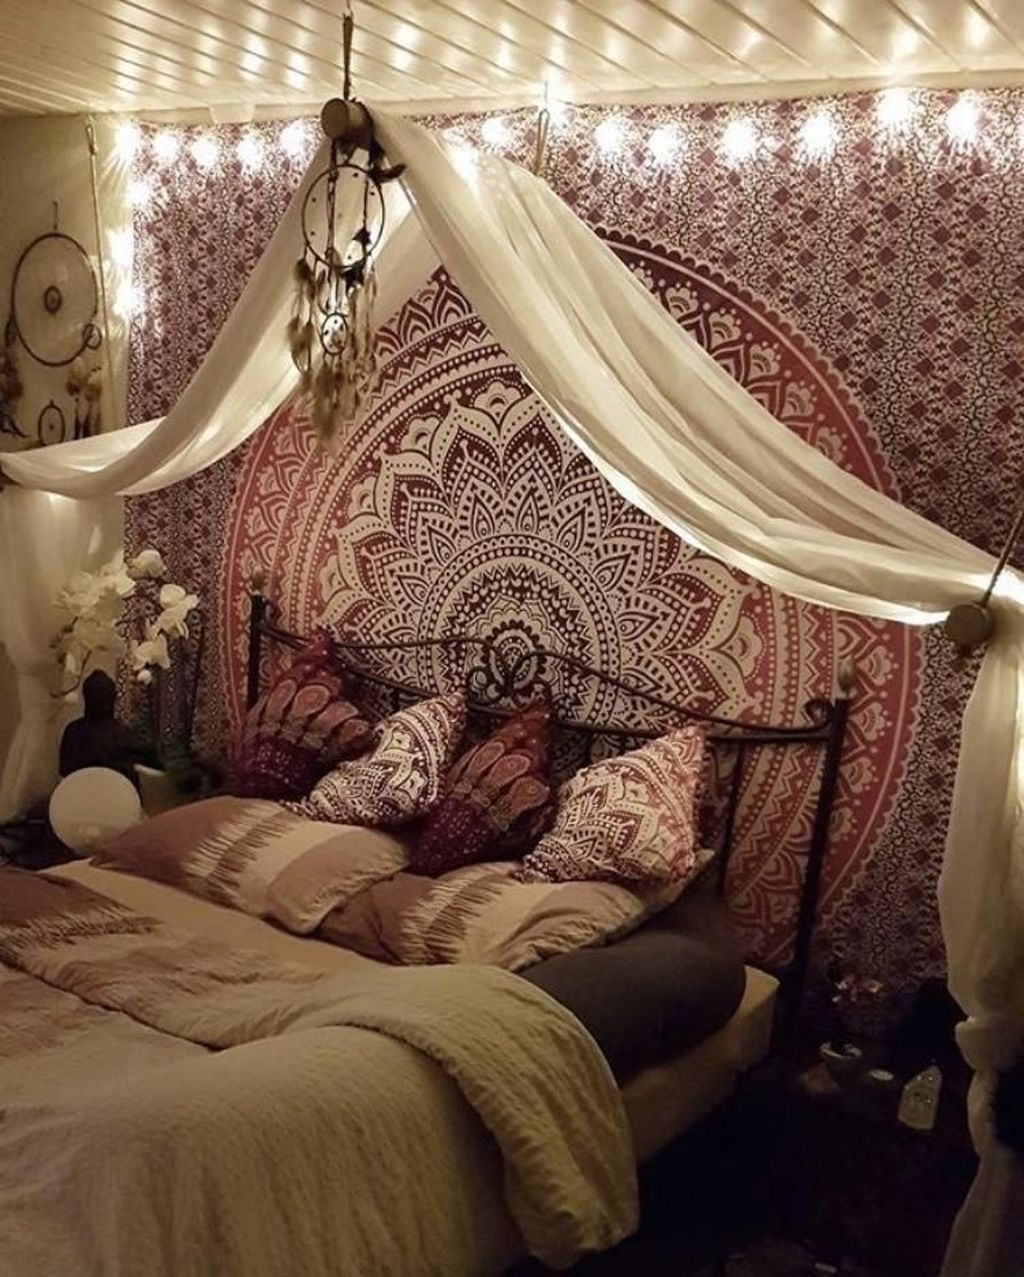 Stunning Hippie Room Decor Ideas You Never Seen Before 31